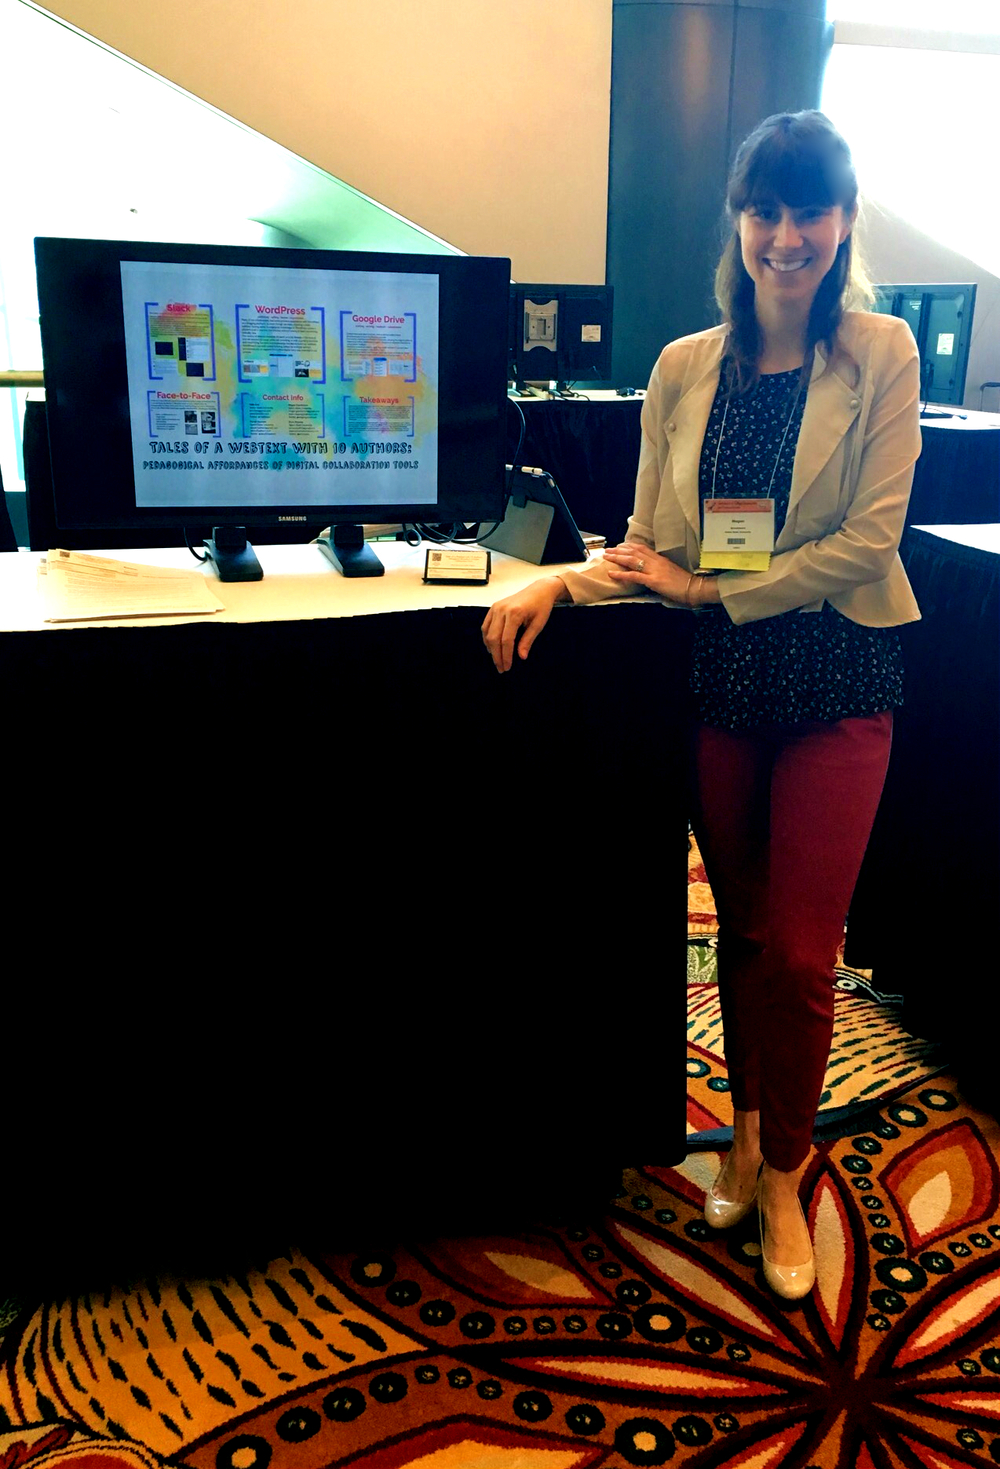 """Presenting a digital pedagogy poster, """"Tales of a Webtext with 10 authors: Pedagogical Affordances of Digital Collaboration Tools,"""" at the Conference on College Composition and Communication (CCCC's) in Houston, Texas, in April 2016. Photo Credit: Danah Hashem"""